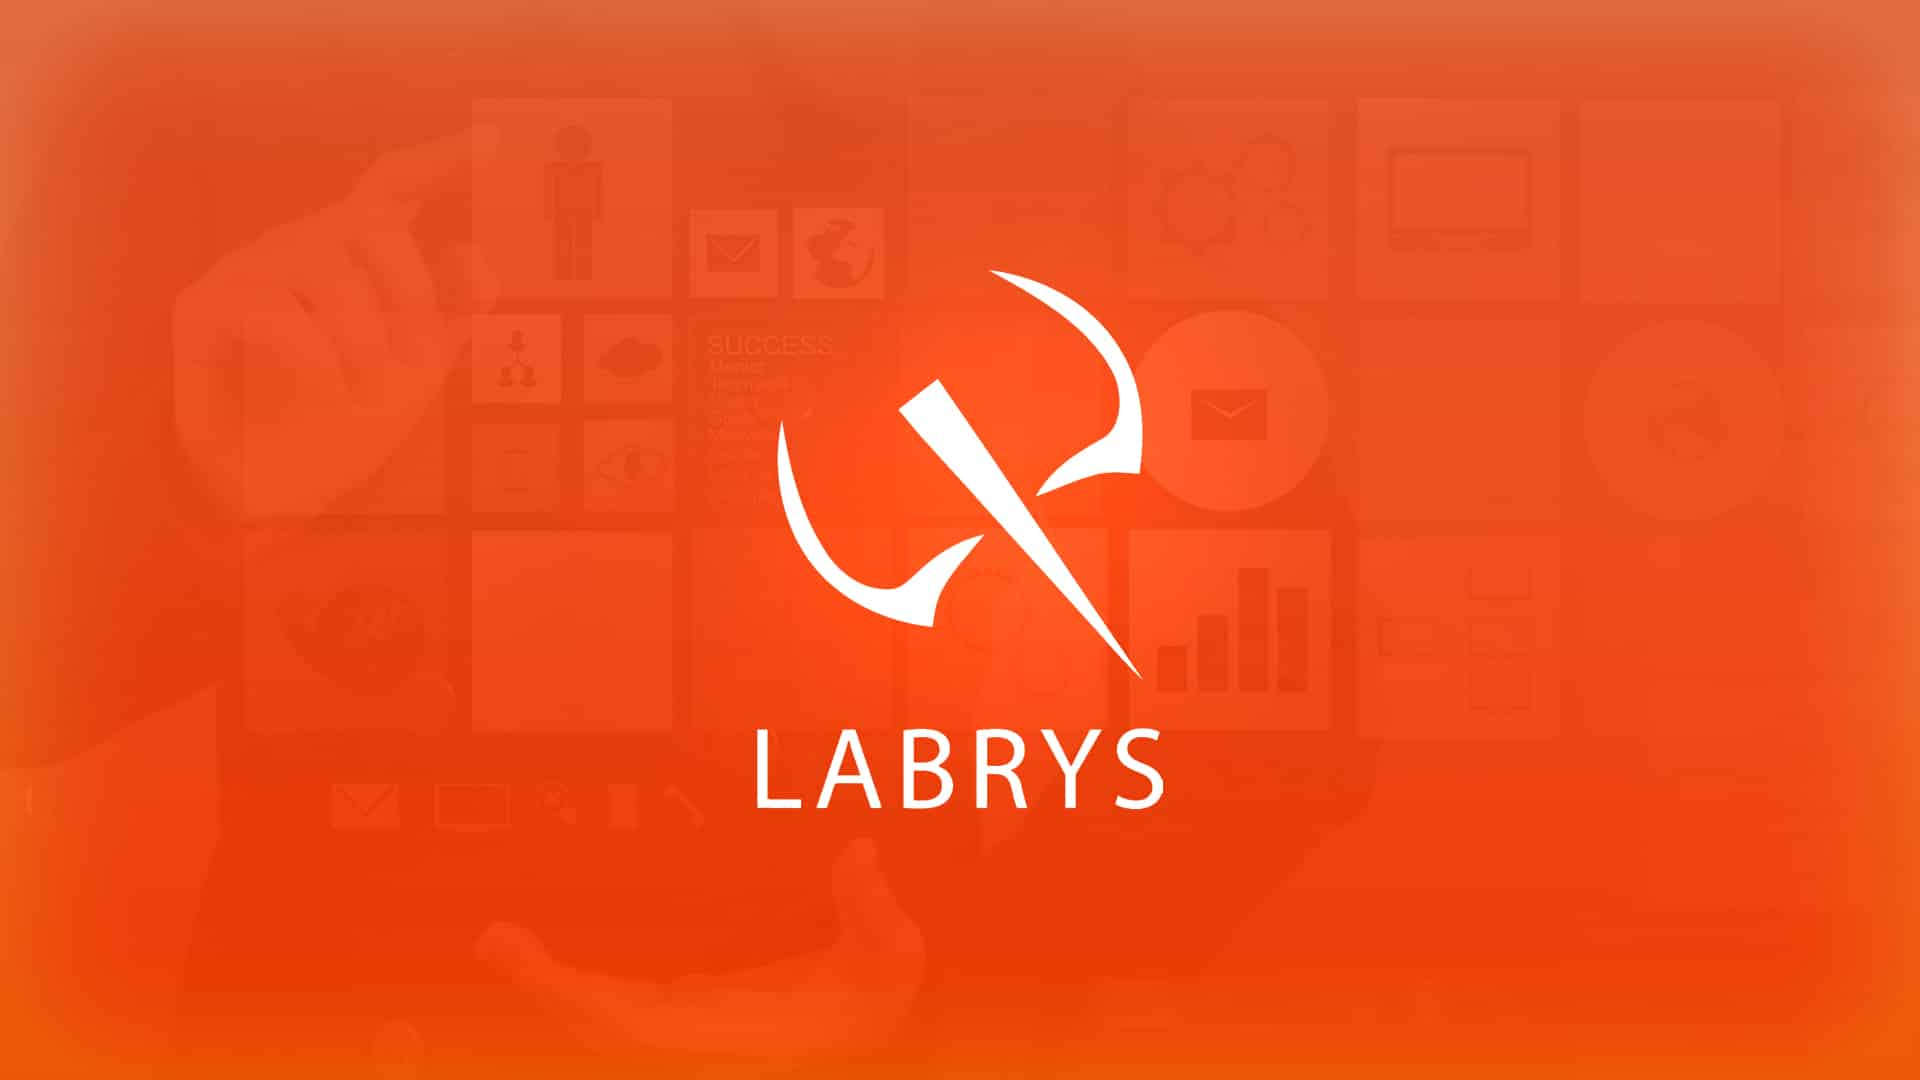 Labrys Consulting